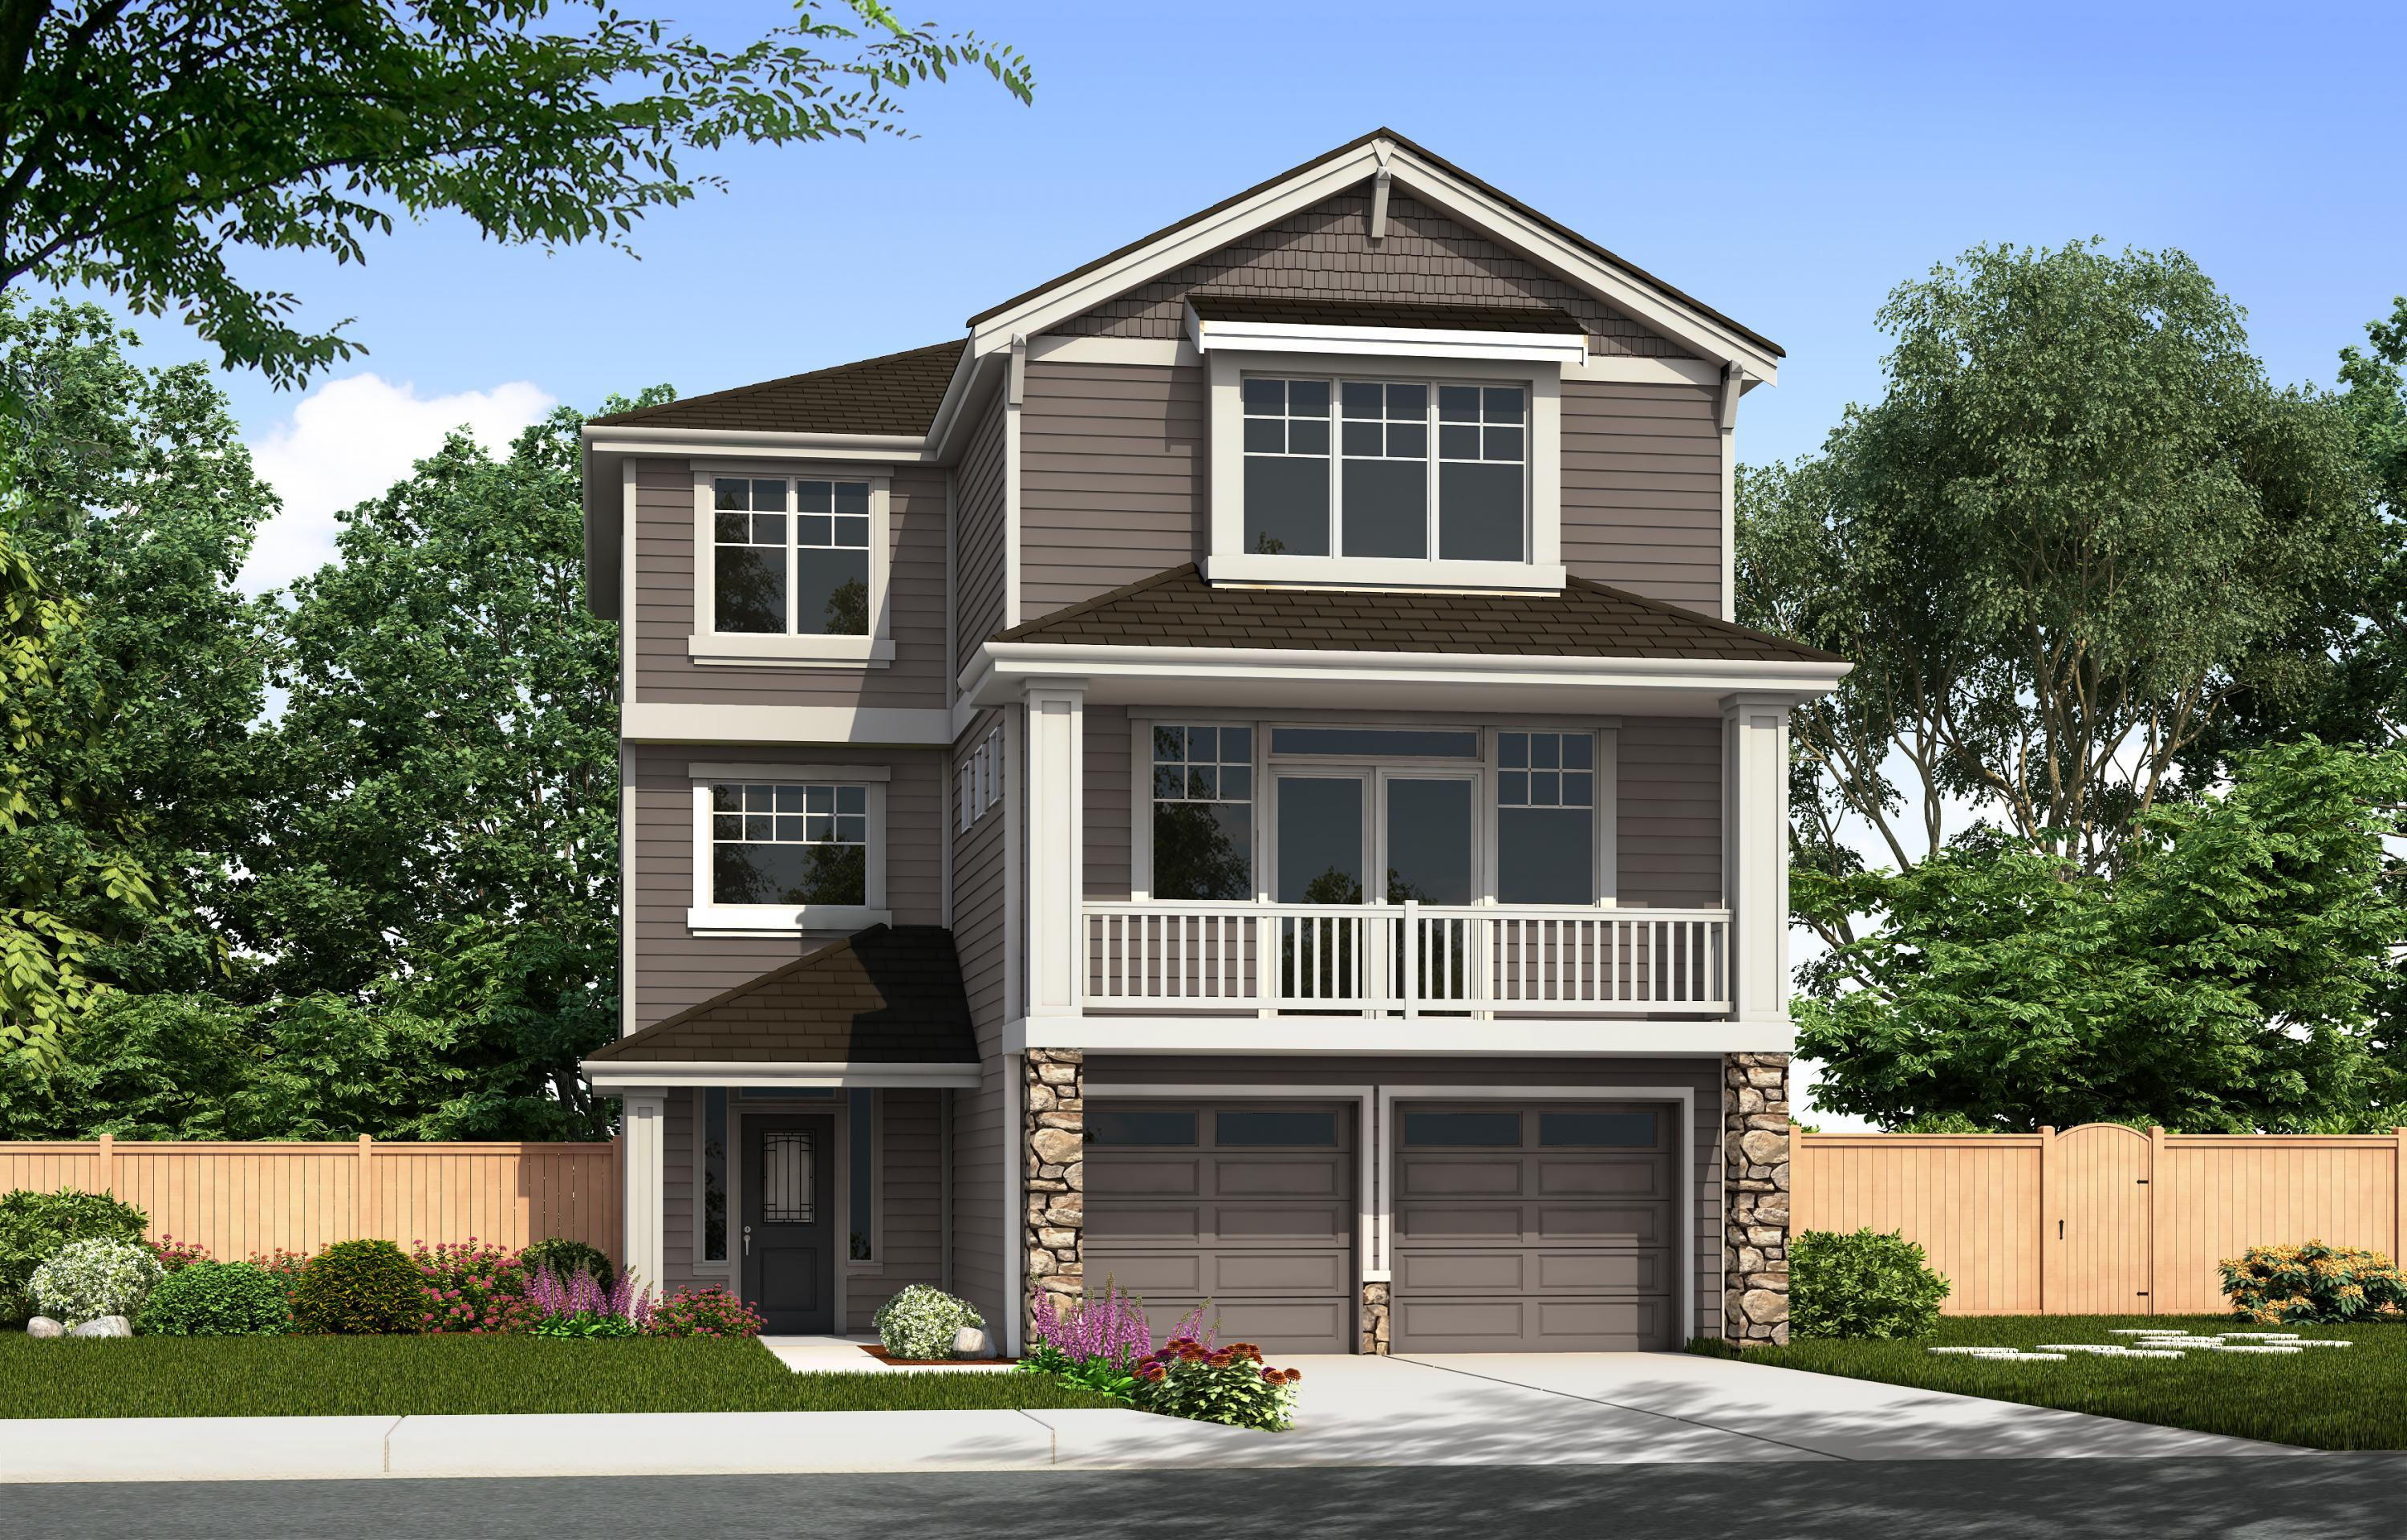 New homes for sale in 98003 seattle bellevue for New homes seattle washington area